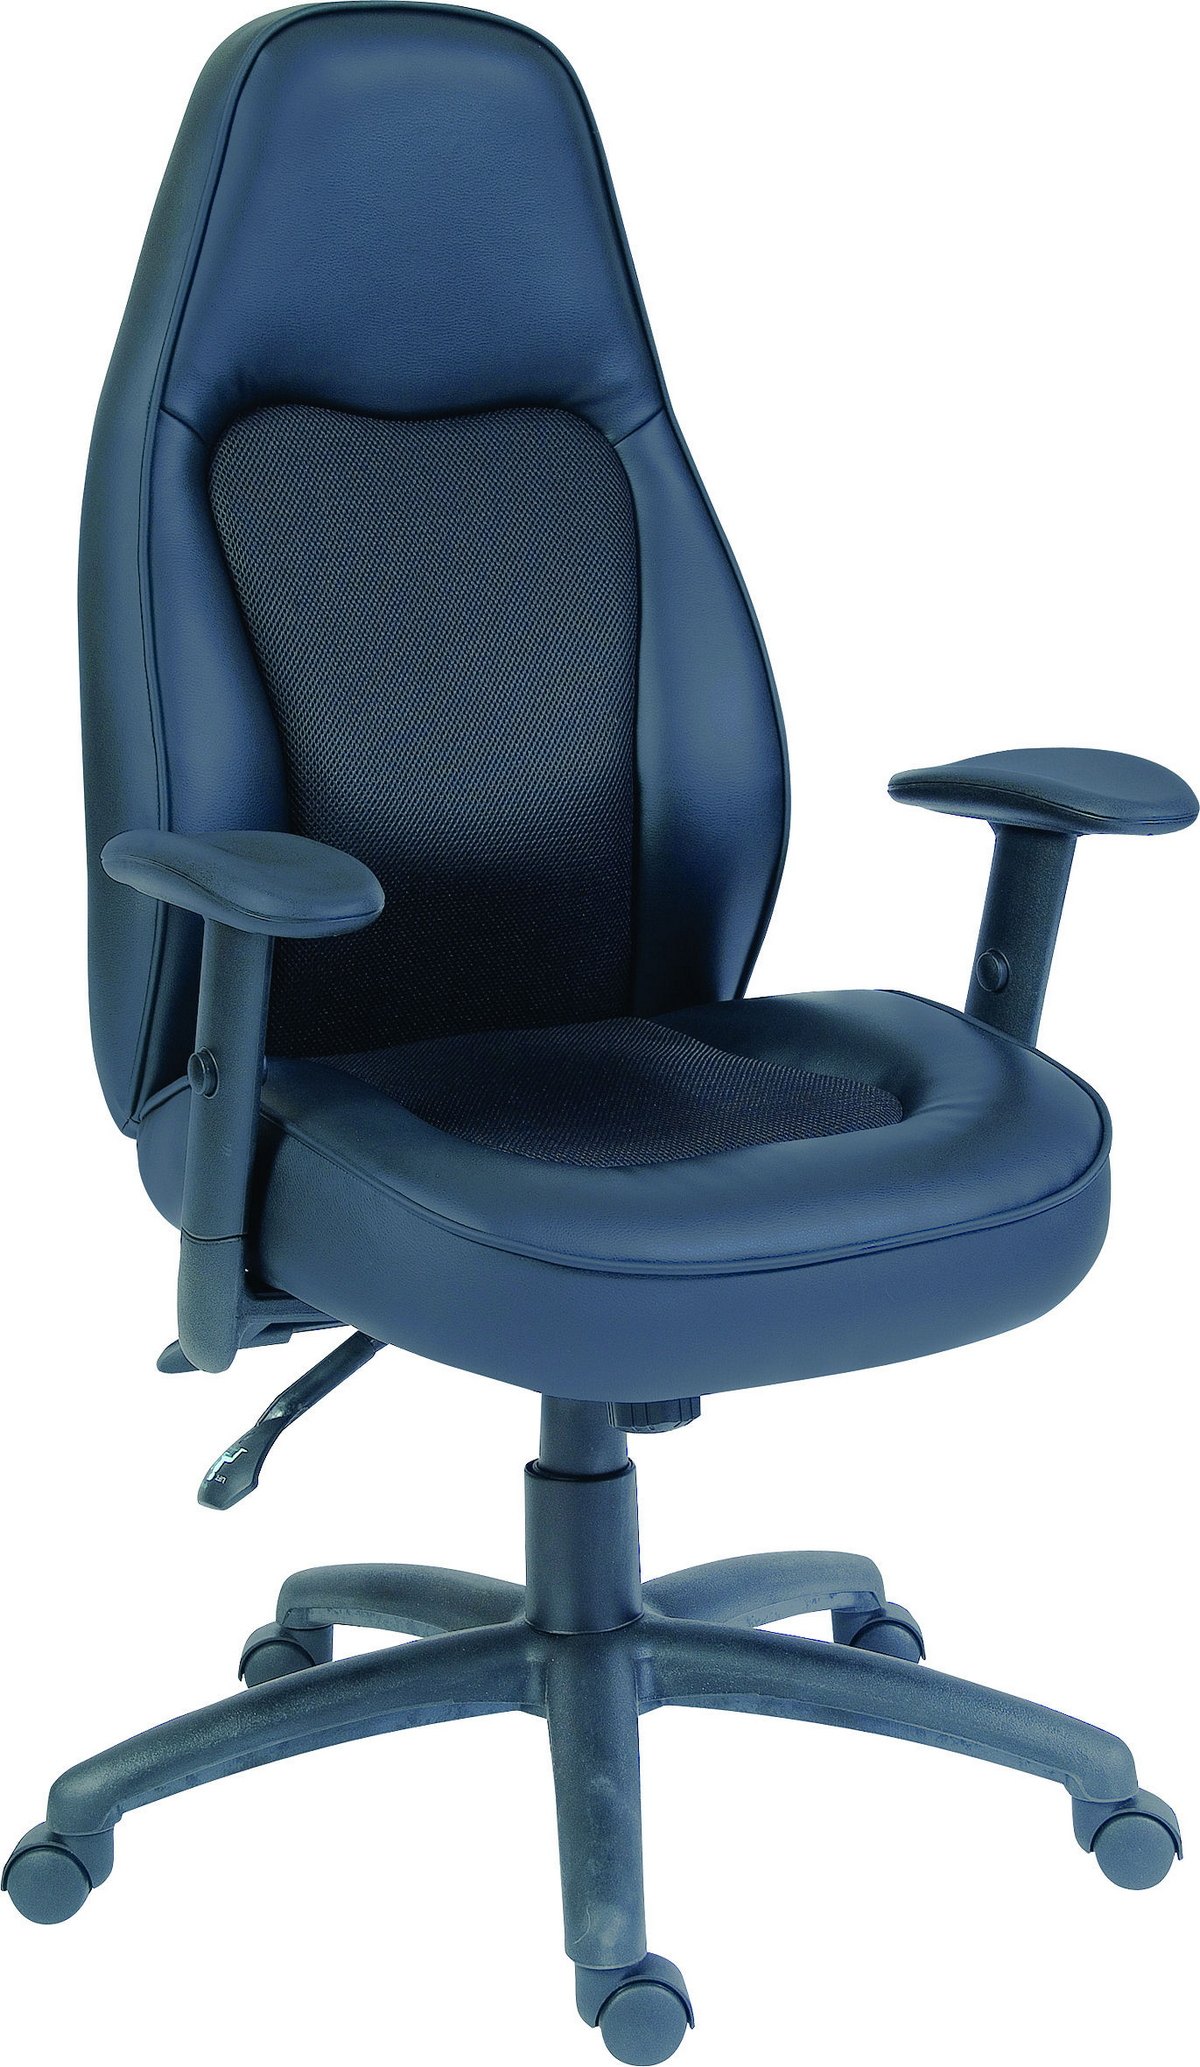 ergonomic desk chair uk console gaming rapide office posture chairs